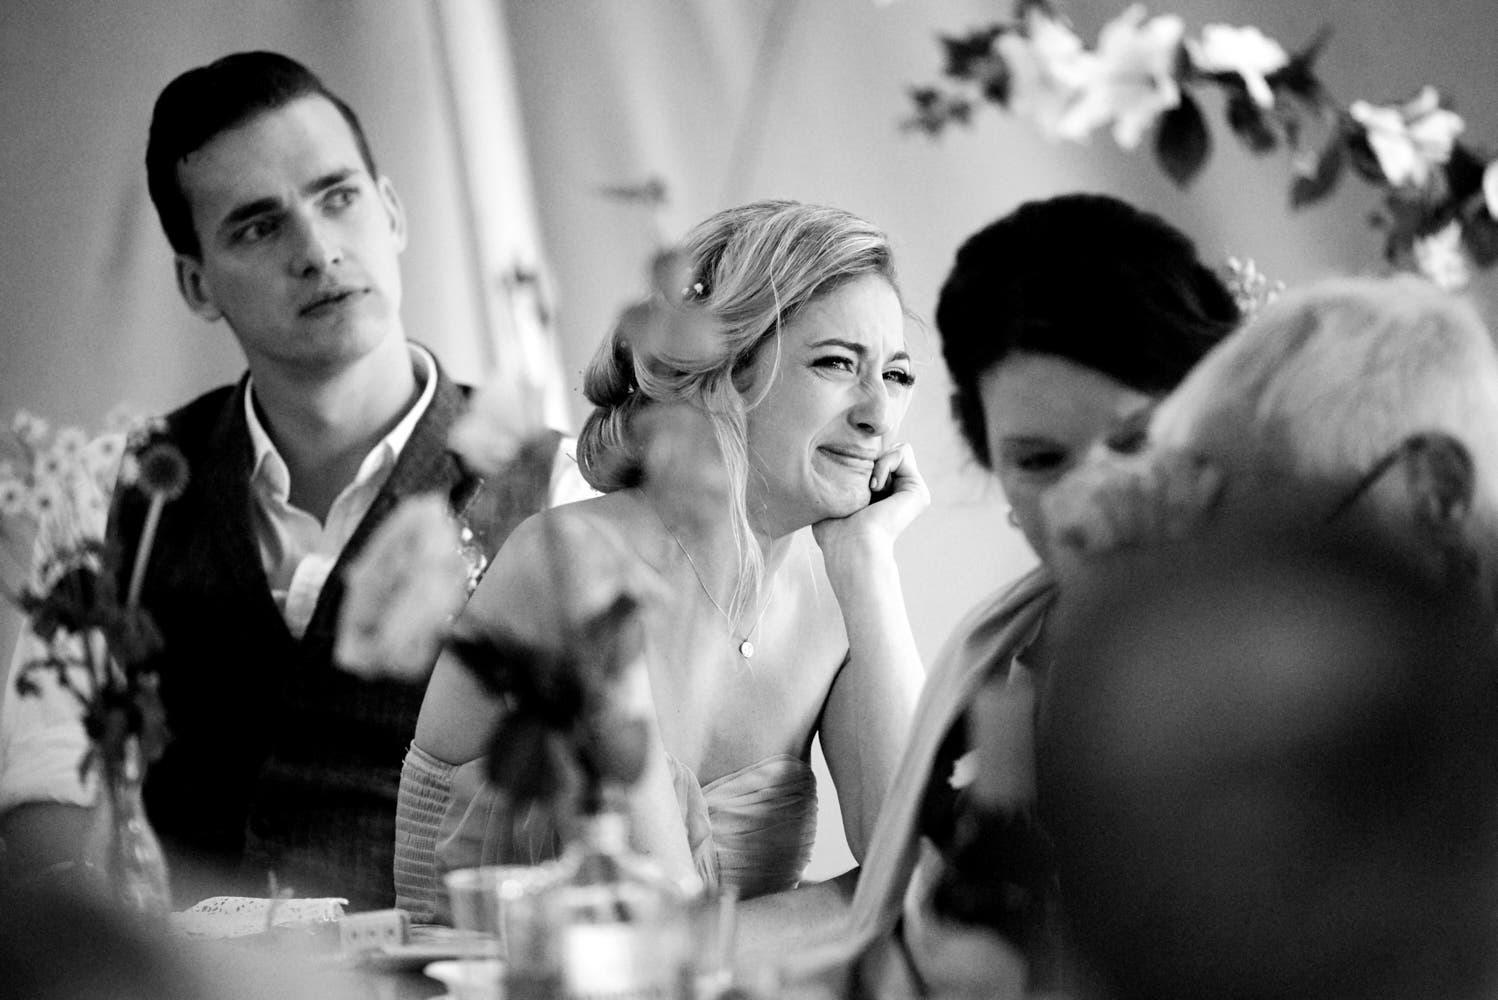 Martin Beddall: Tips From a Wedding Photojournalist